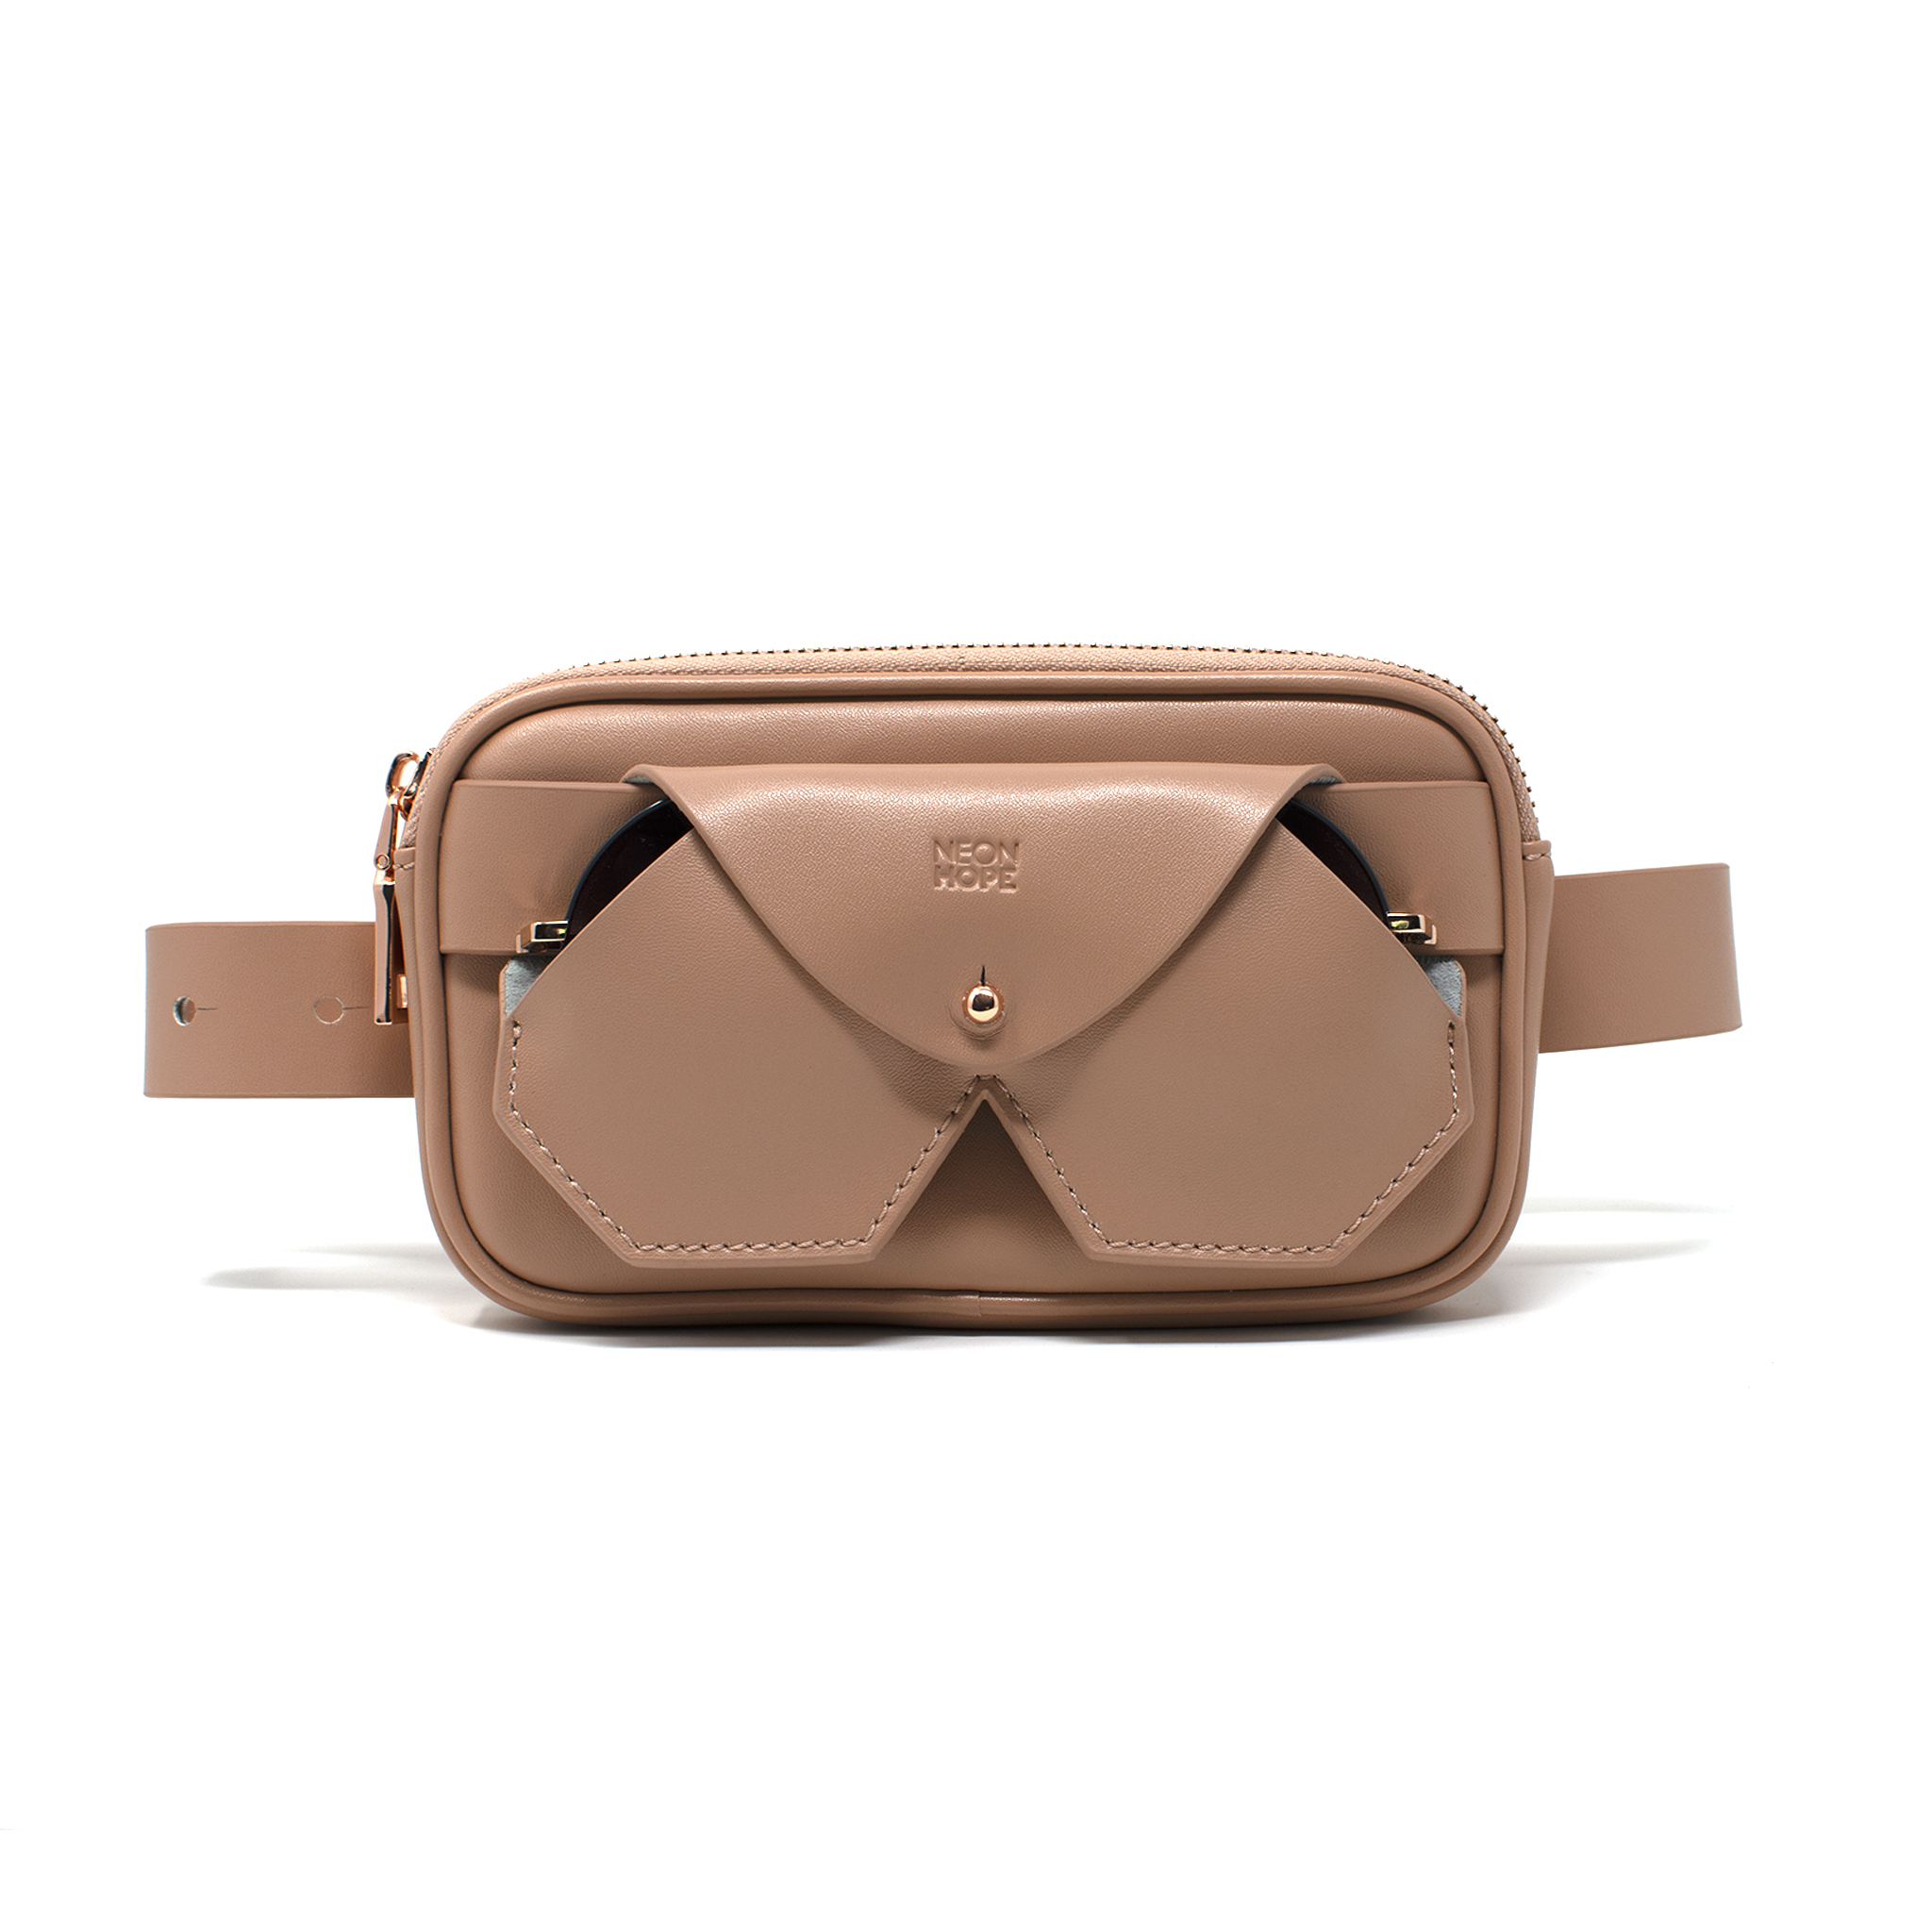 Bumbag - Blush by Neon Hope on curated-crowd.com